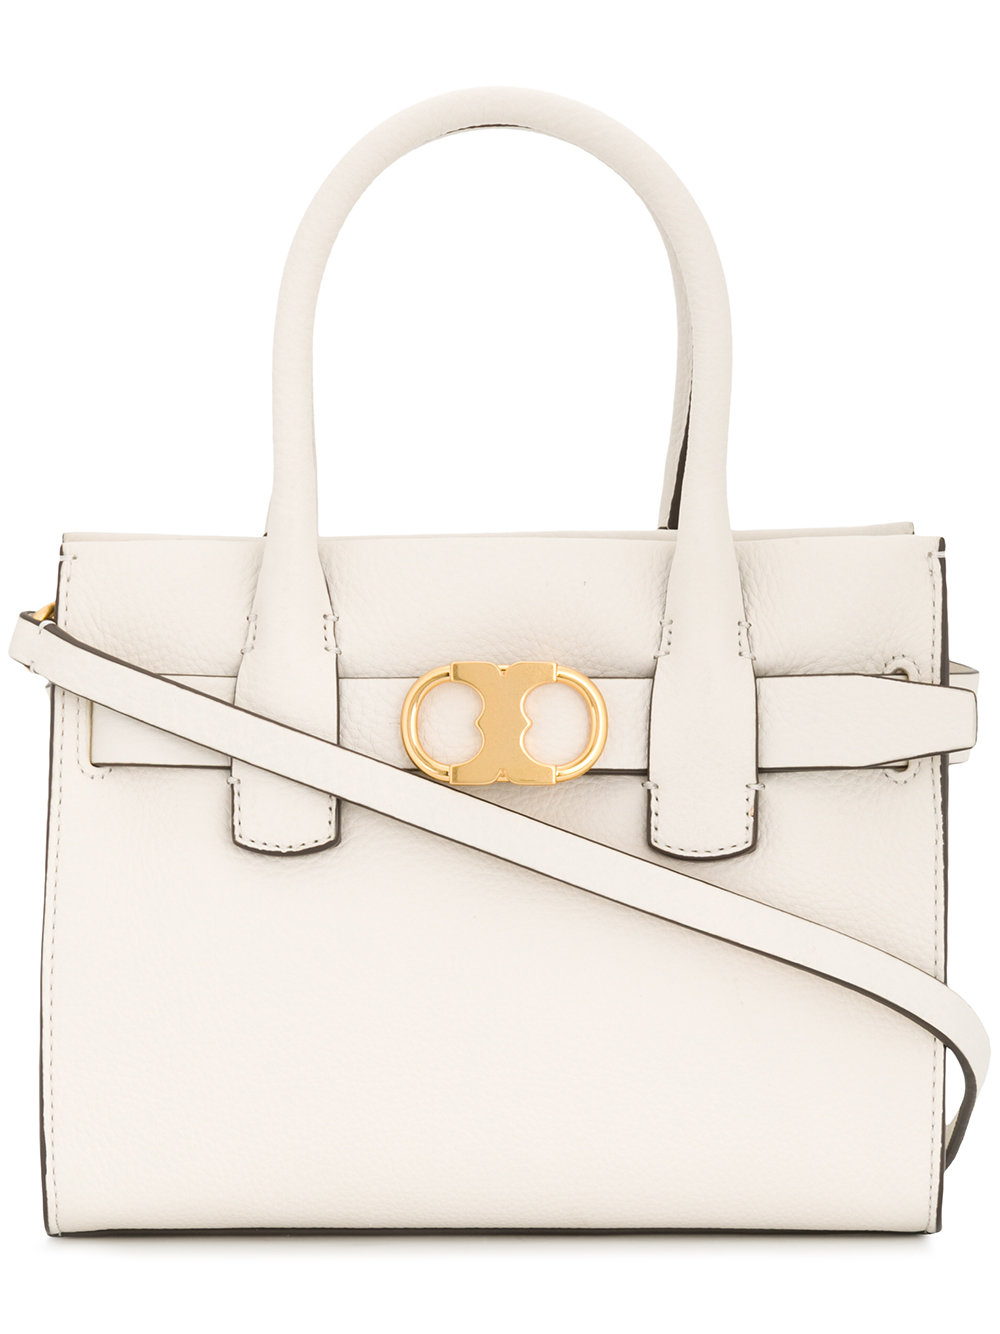 Tory Burch GEMIANI SMALL